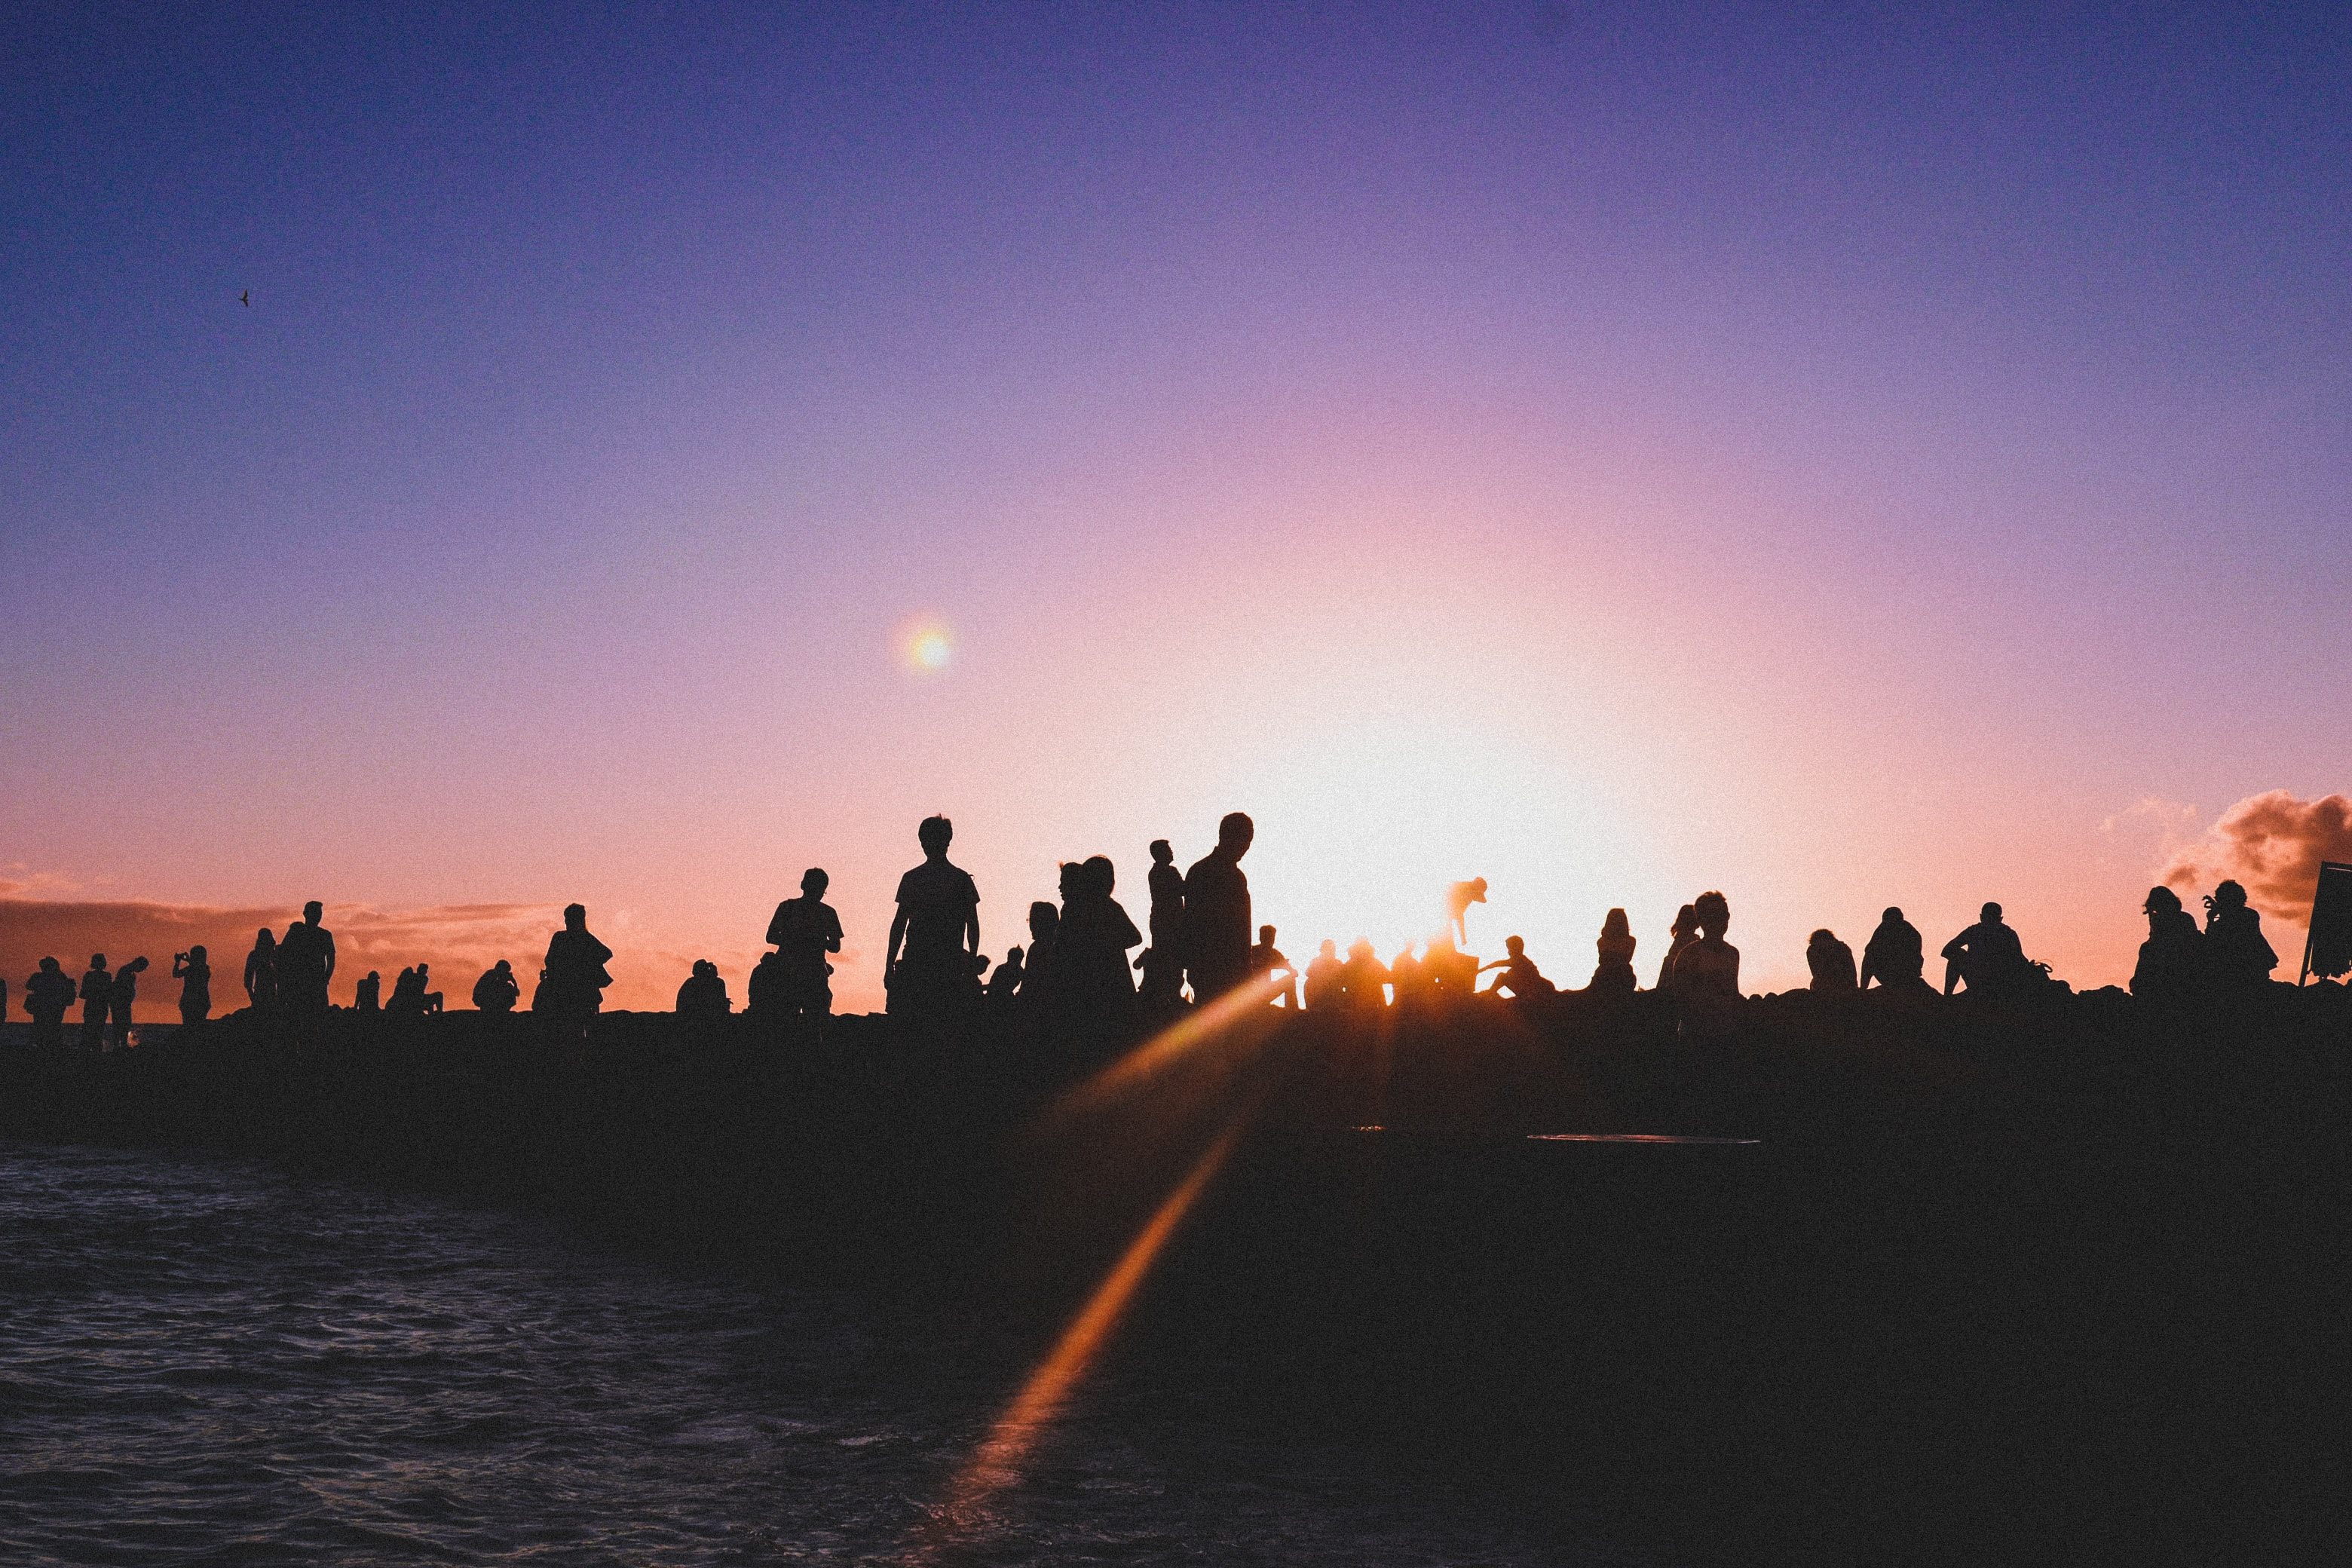 In an interview with California pastor Lamont Hartman, we learn why space sharing is the new leader in community impact.